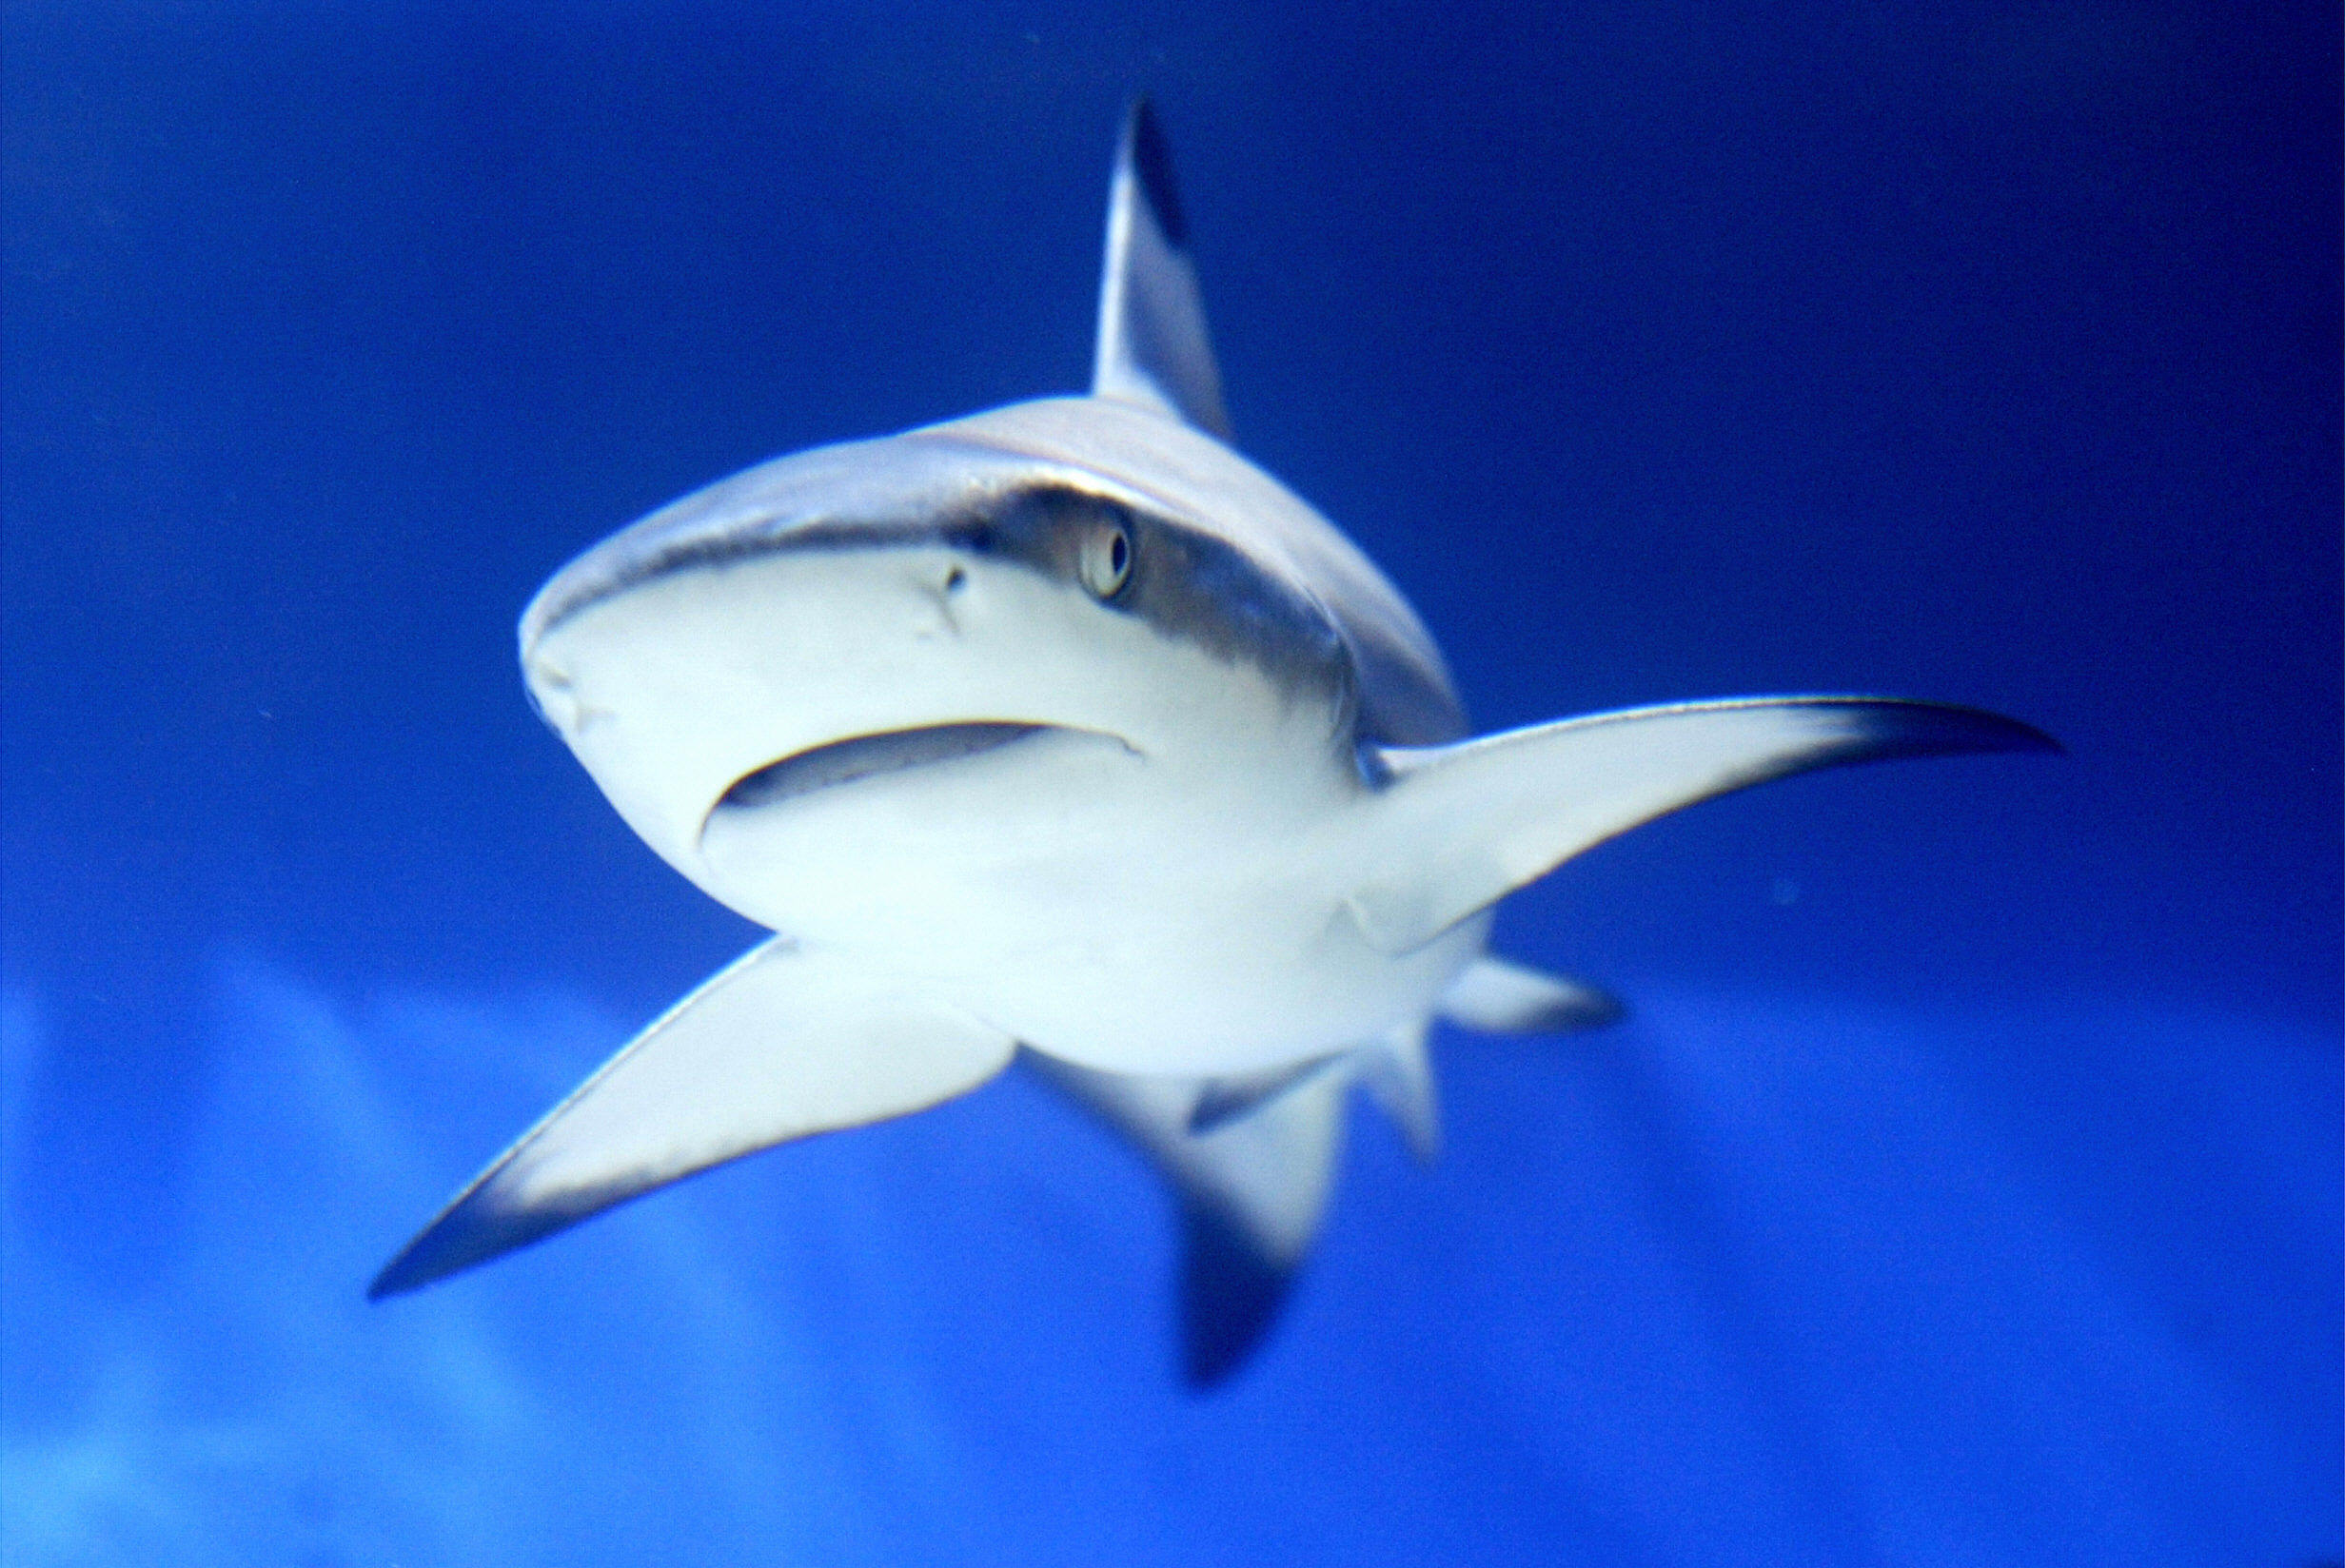 Do Sharks Attack In Shallow Water Or The Deep Sea? The